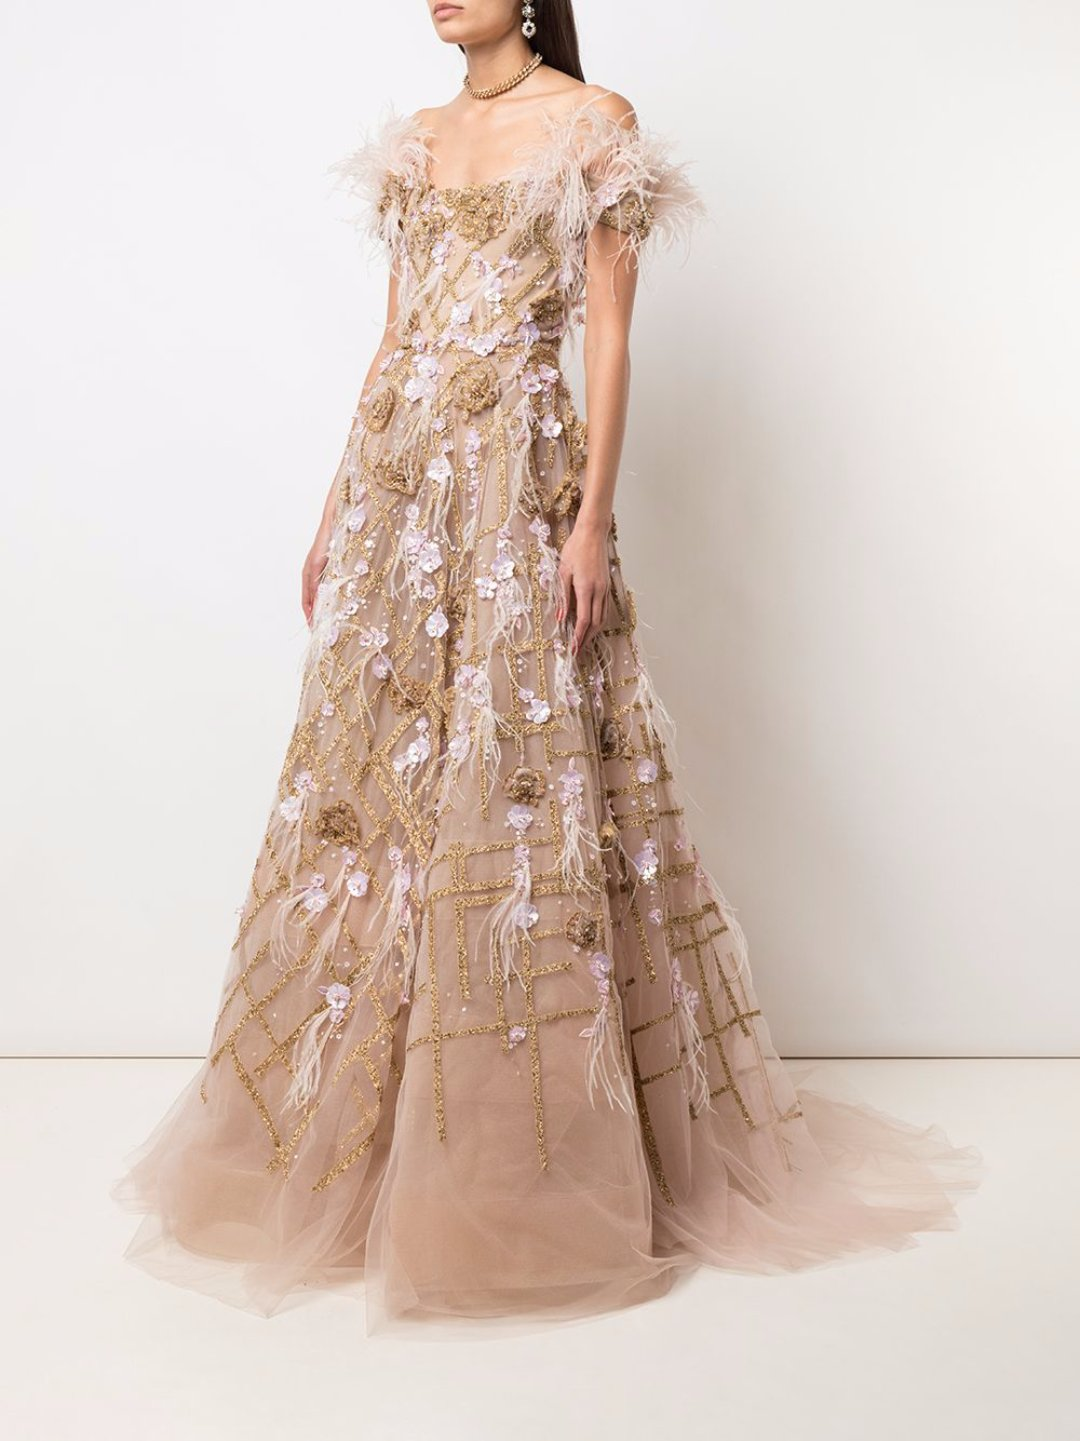 Ballgown with flutter sleeves